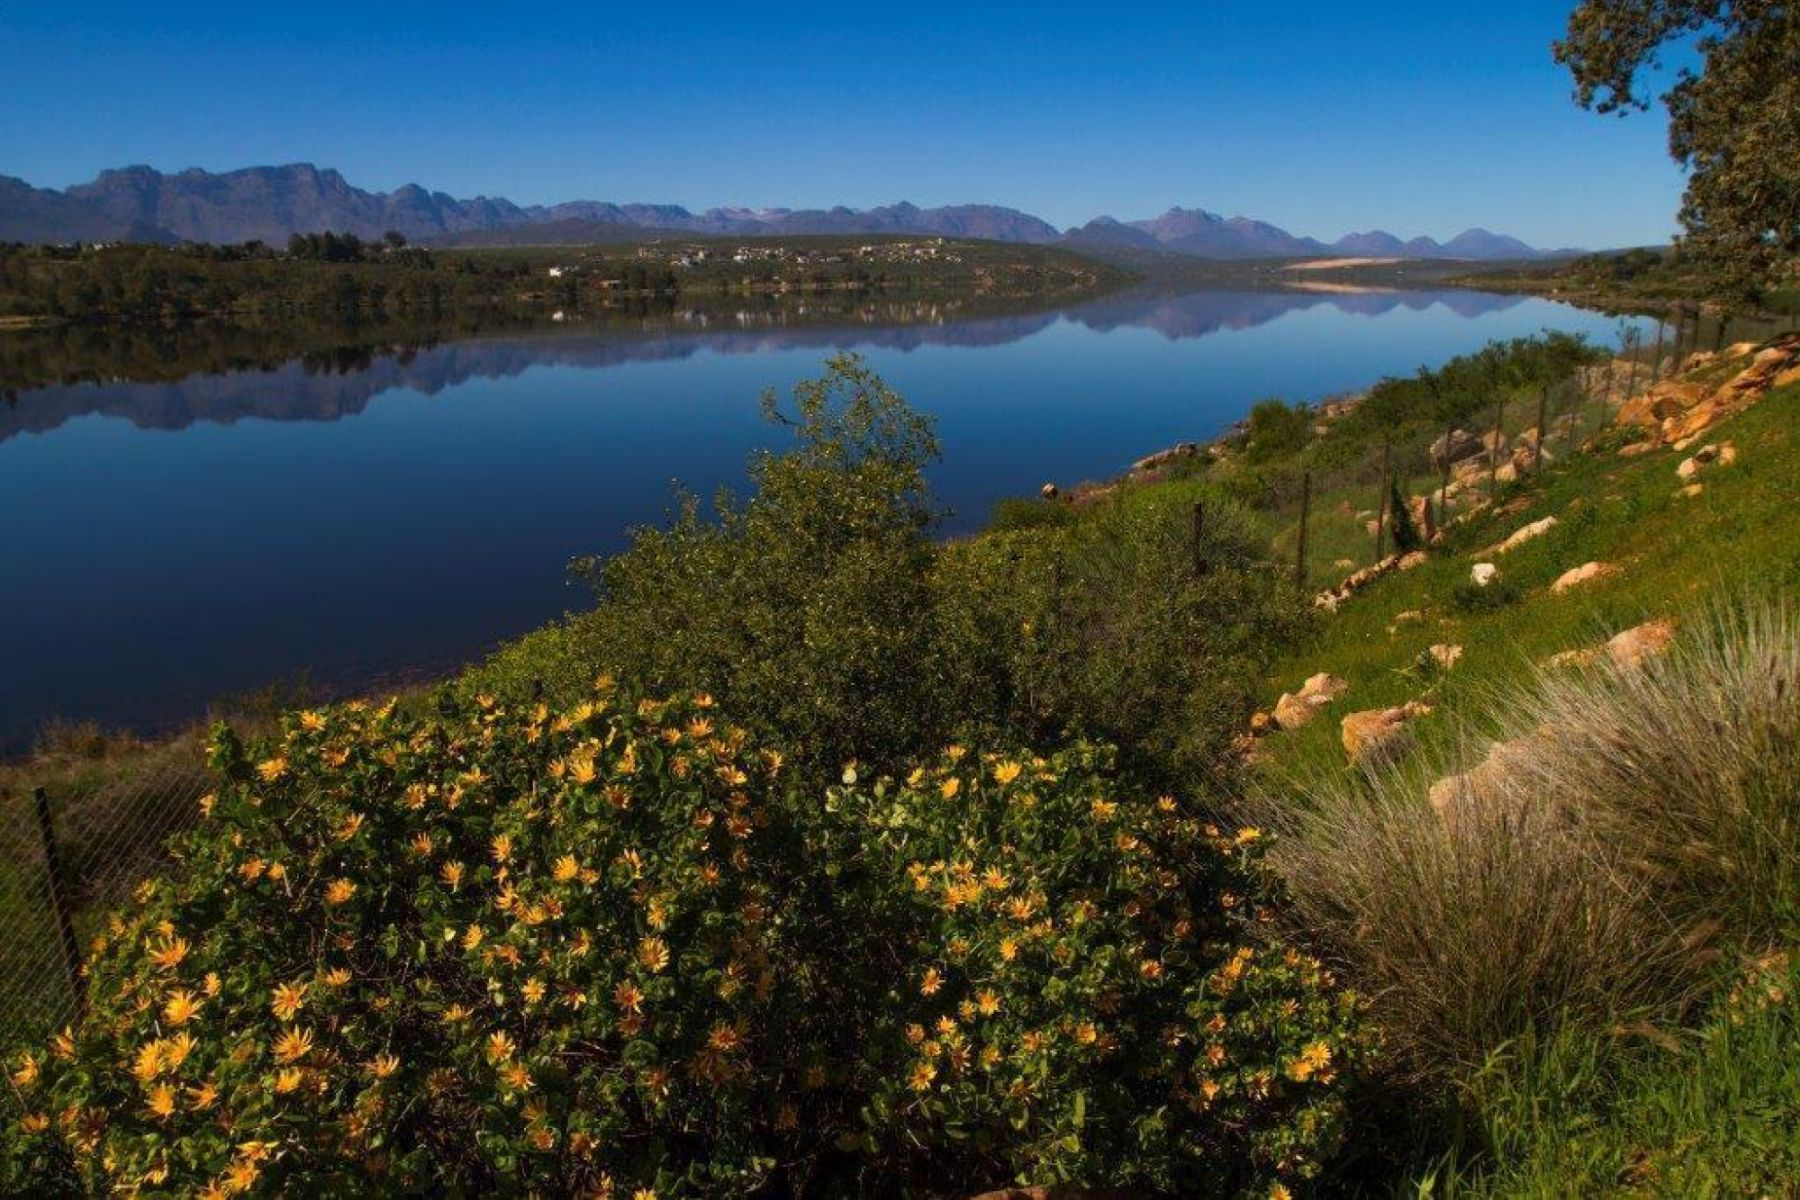 Clanwilliam